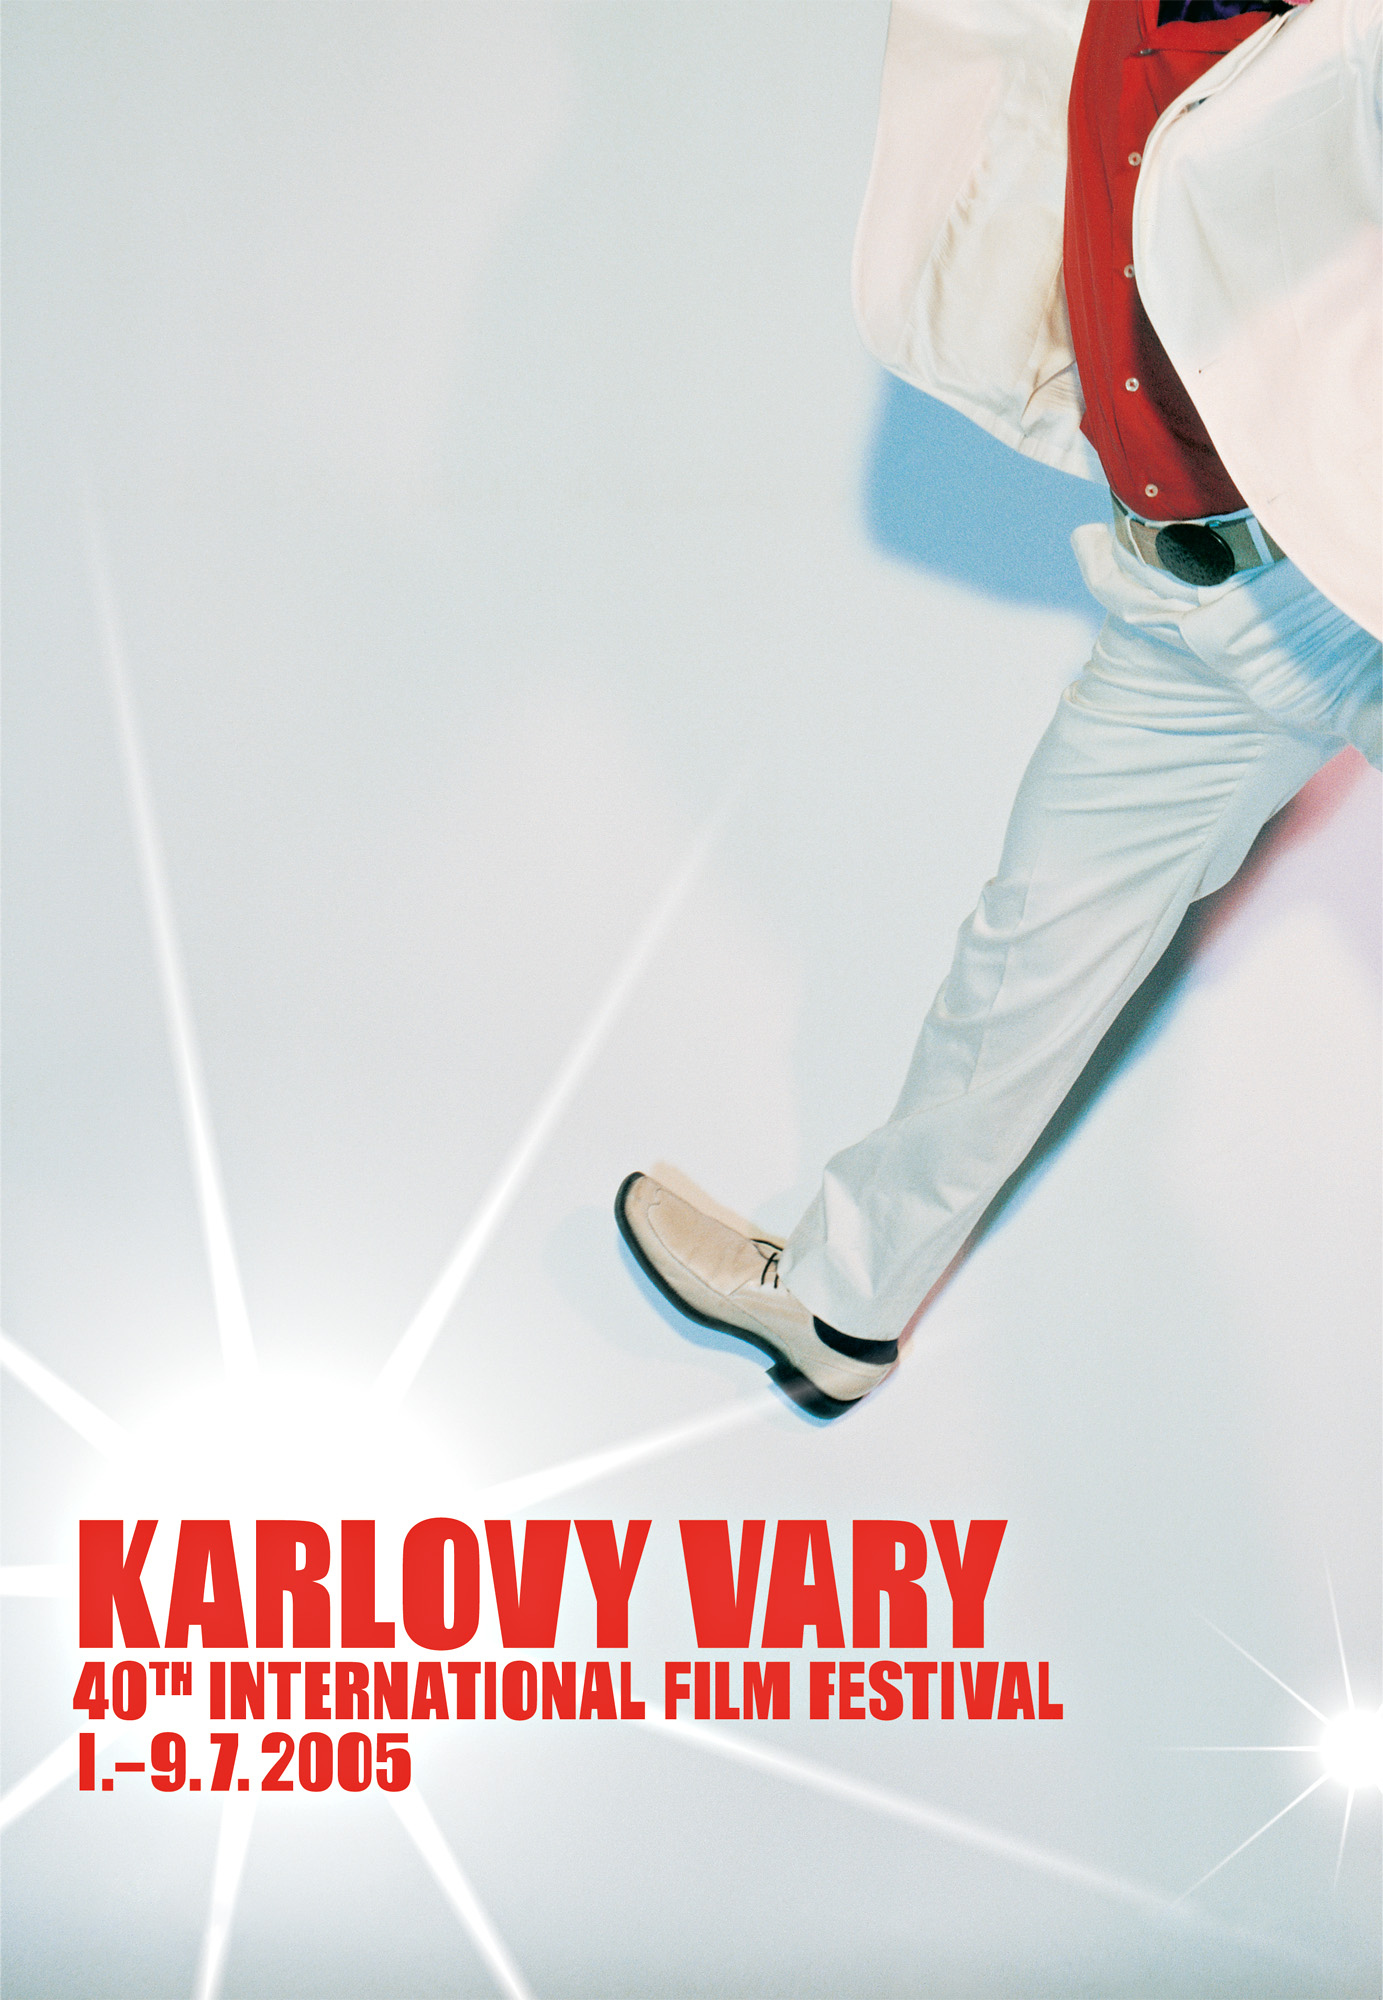 40th Karlovy Vary International Film Festival